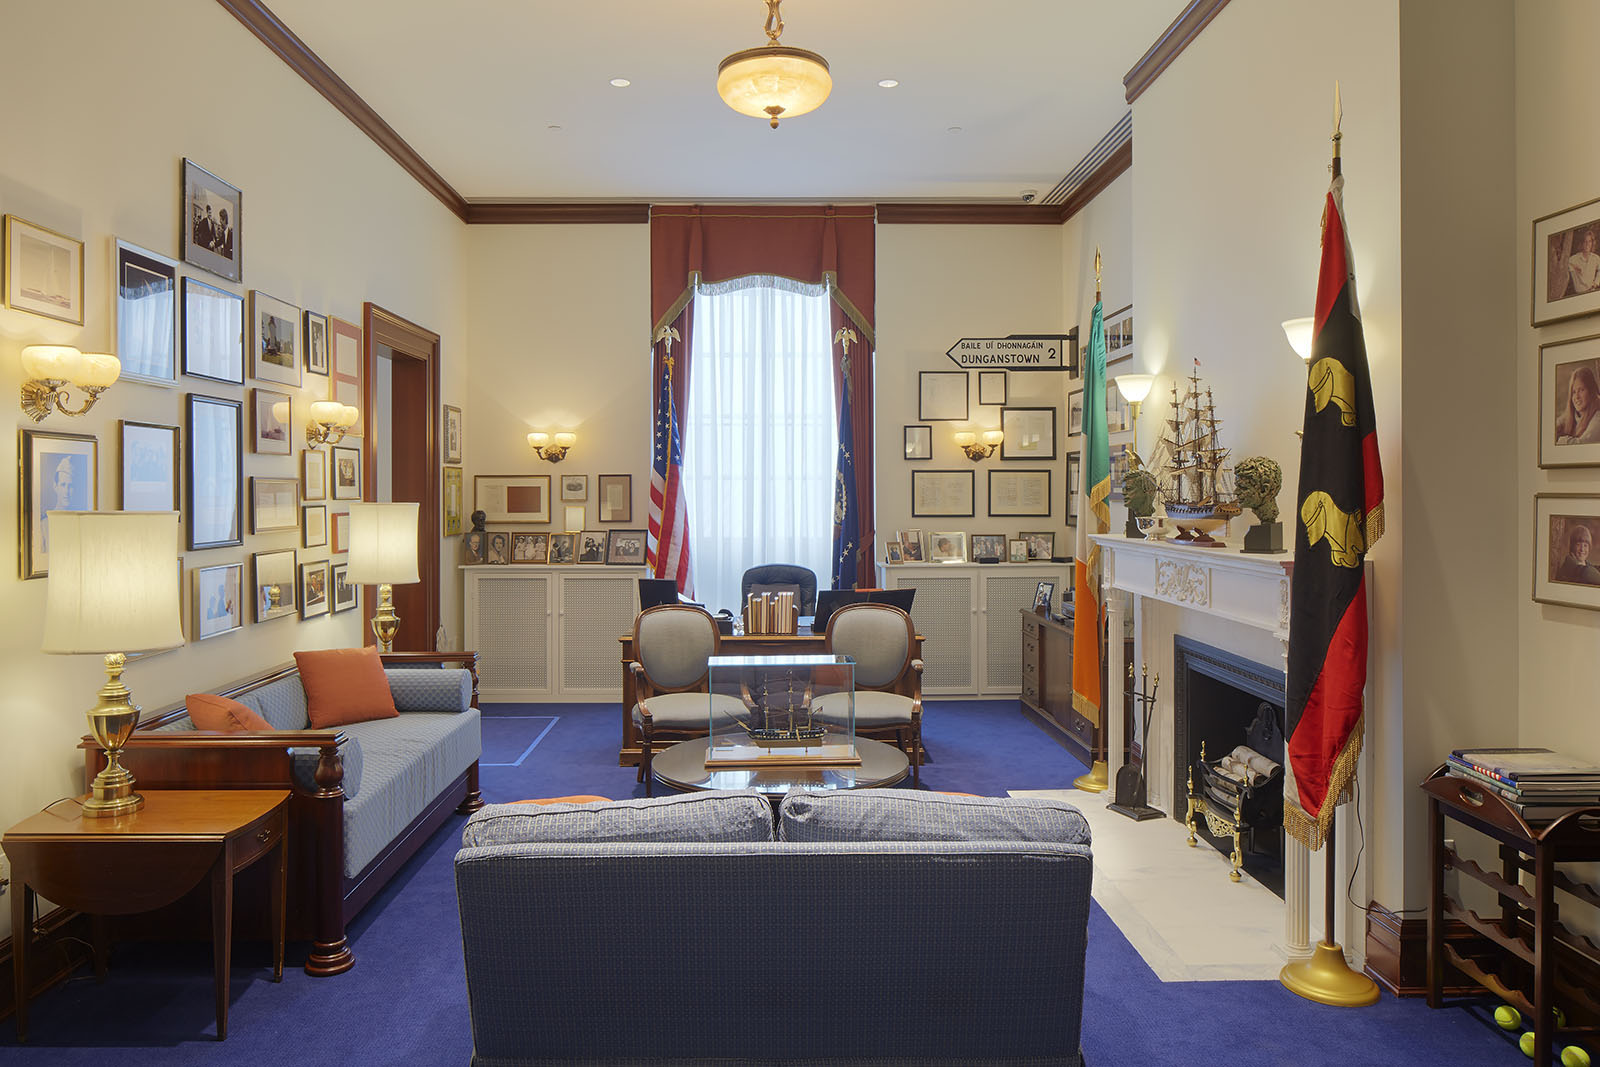 The Office of Senator Kennedy